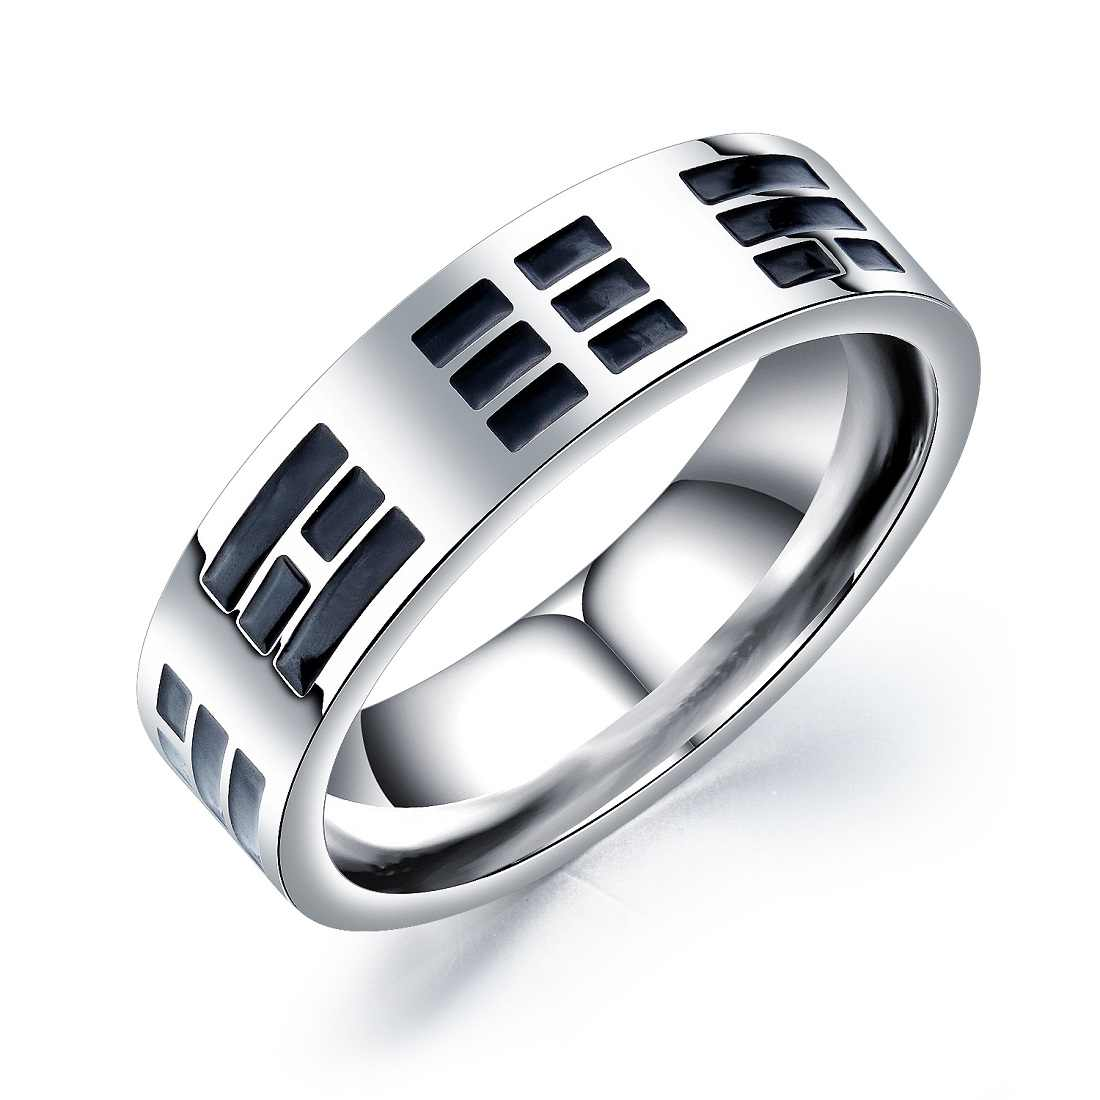 FATE LOVE Brand Male Men Rings Silver Color 316L Stainless Steel Hiqh Polish Fashion Jewelry US size 7 8 9 10 11